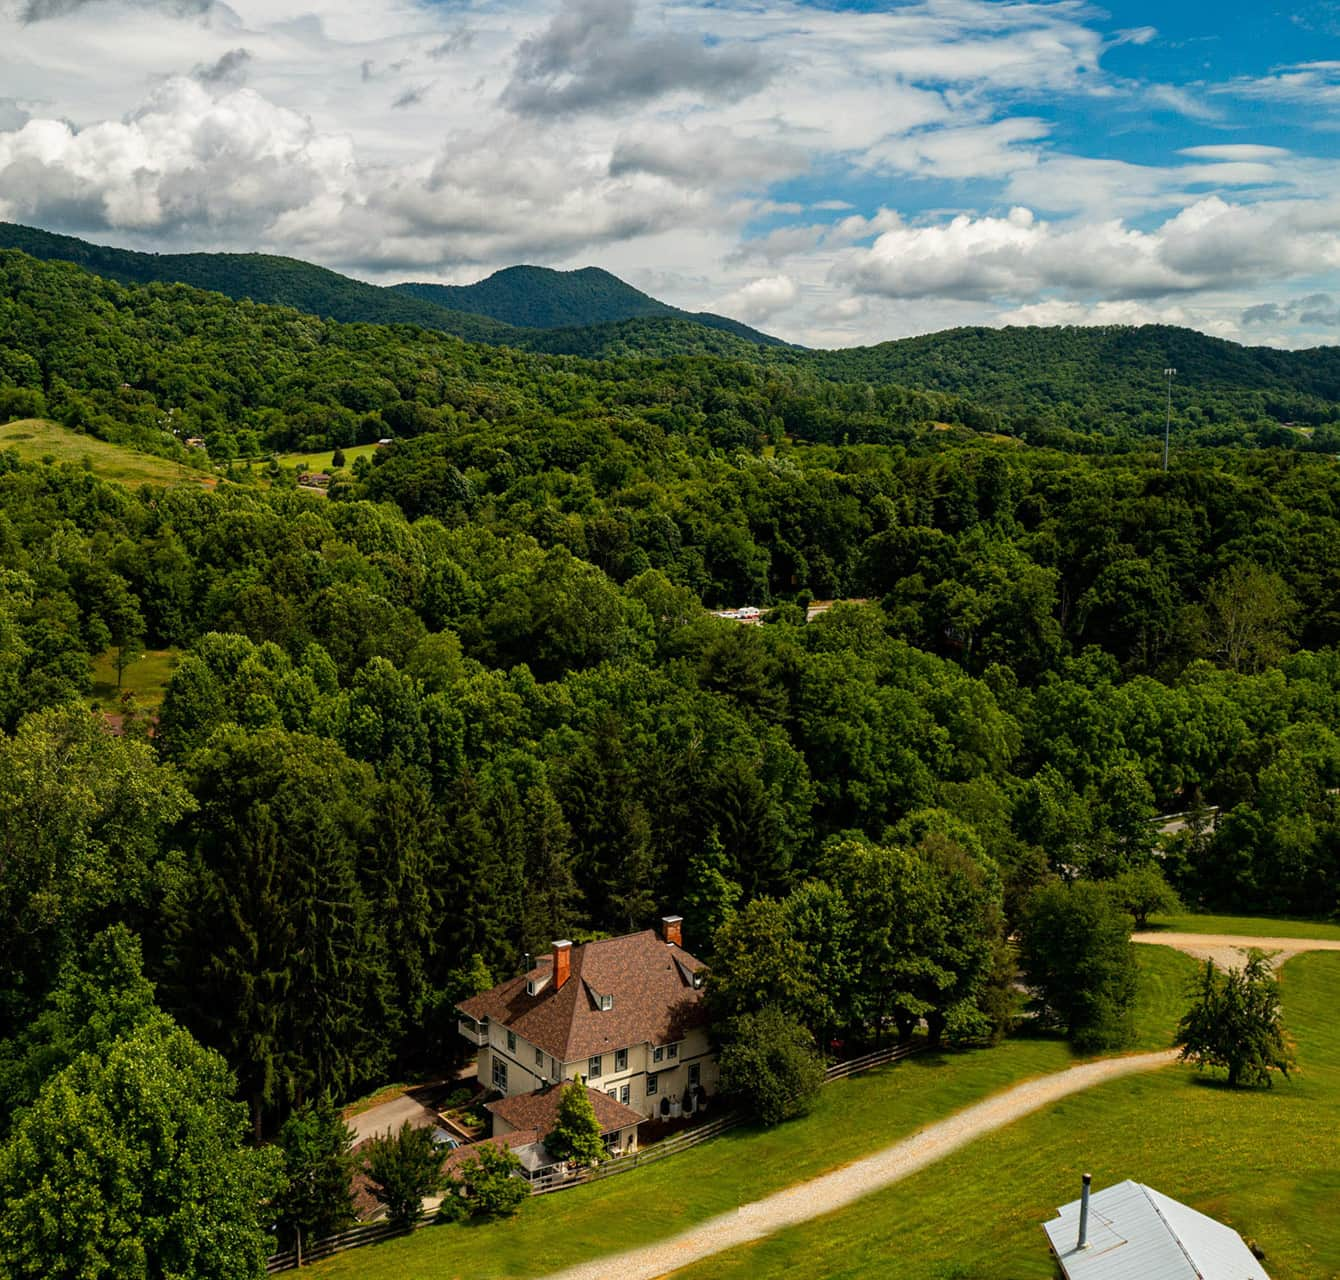 view at our bed and breakfast near Asheville